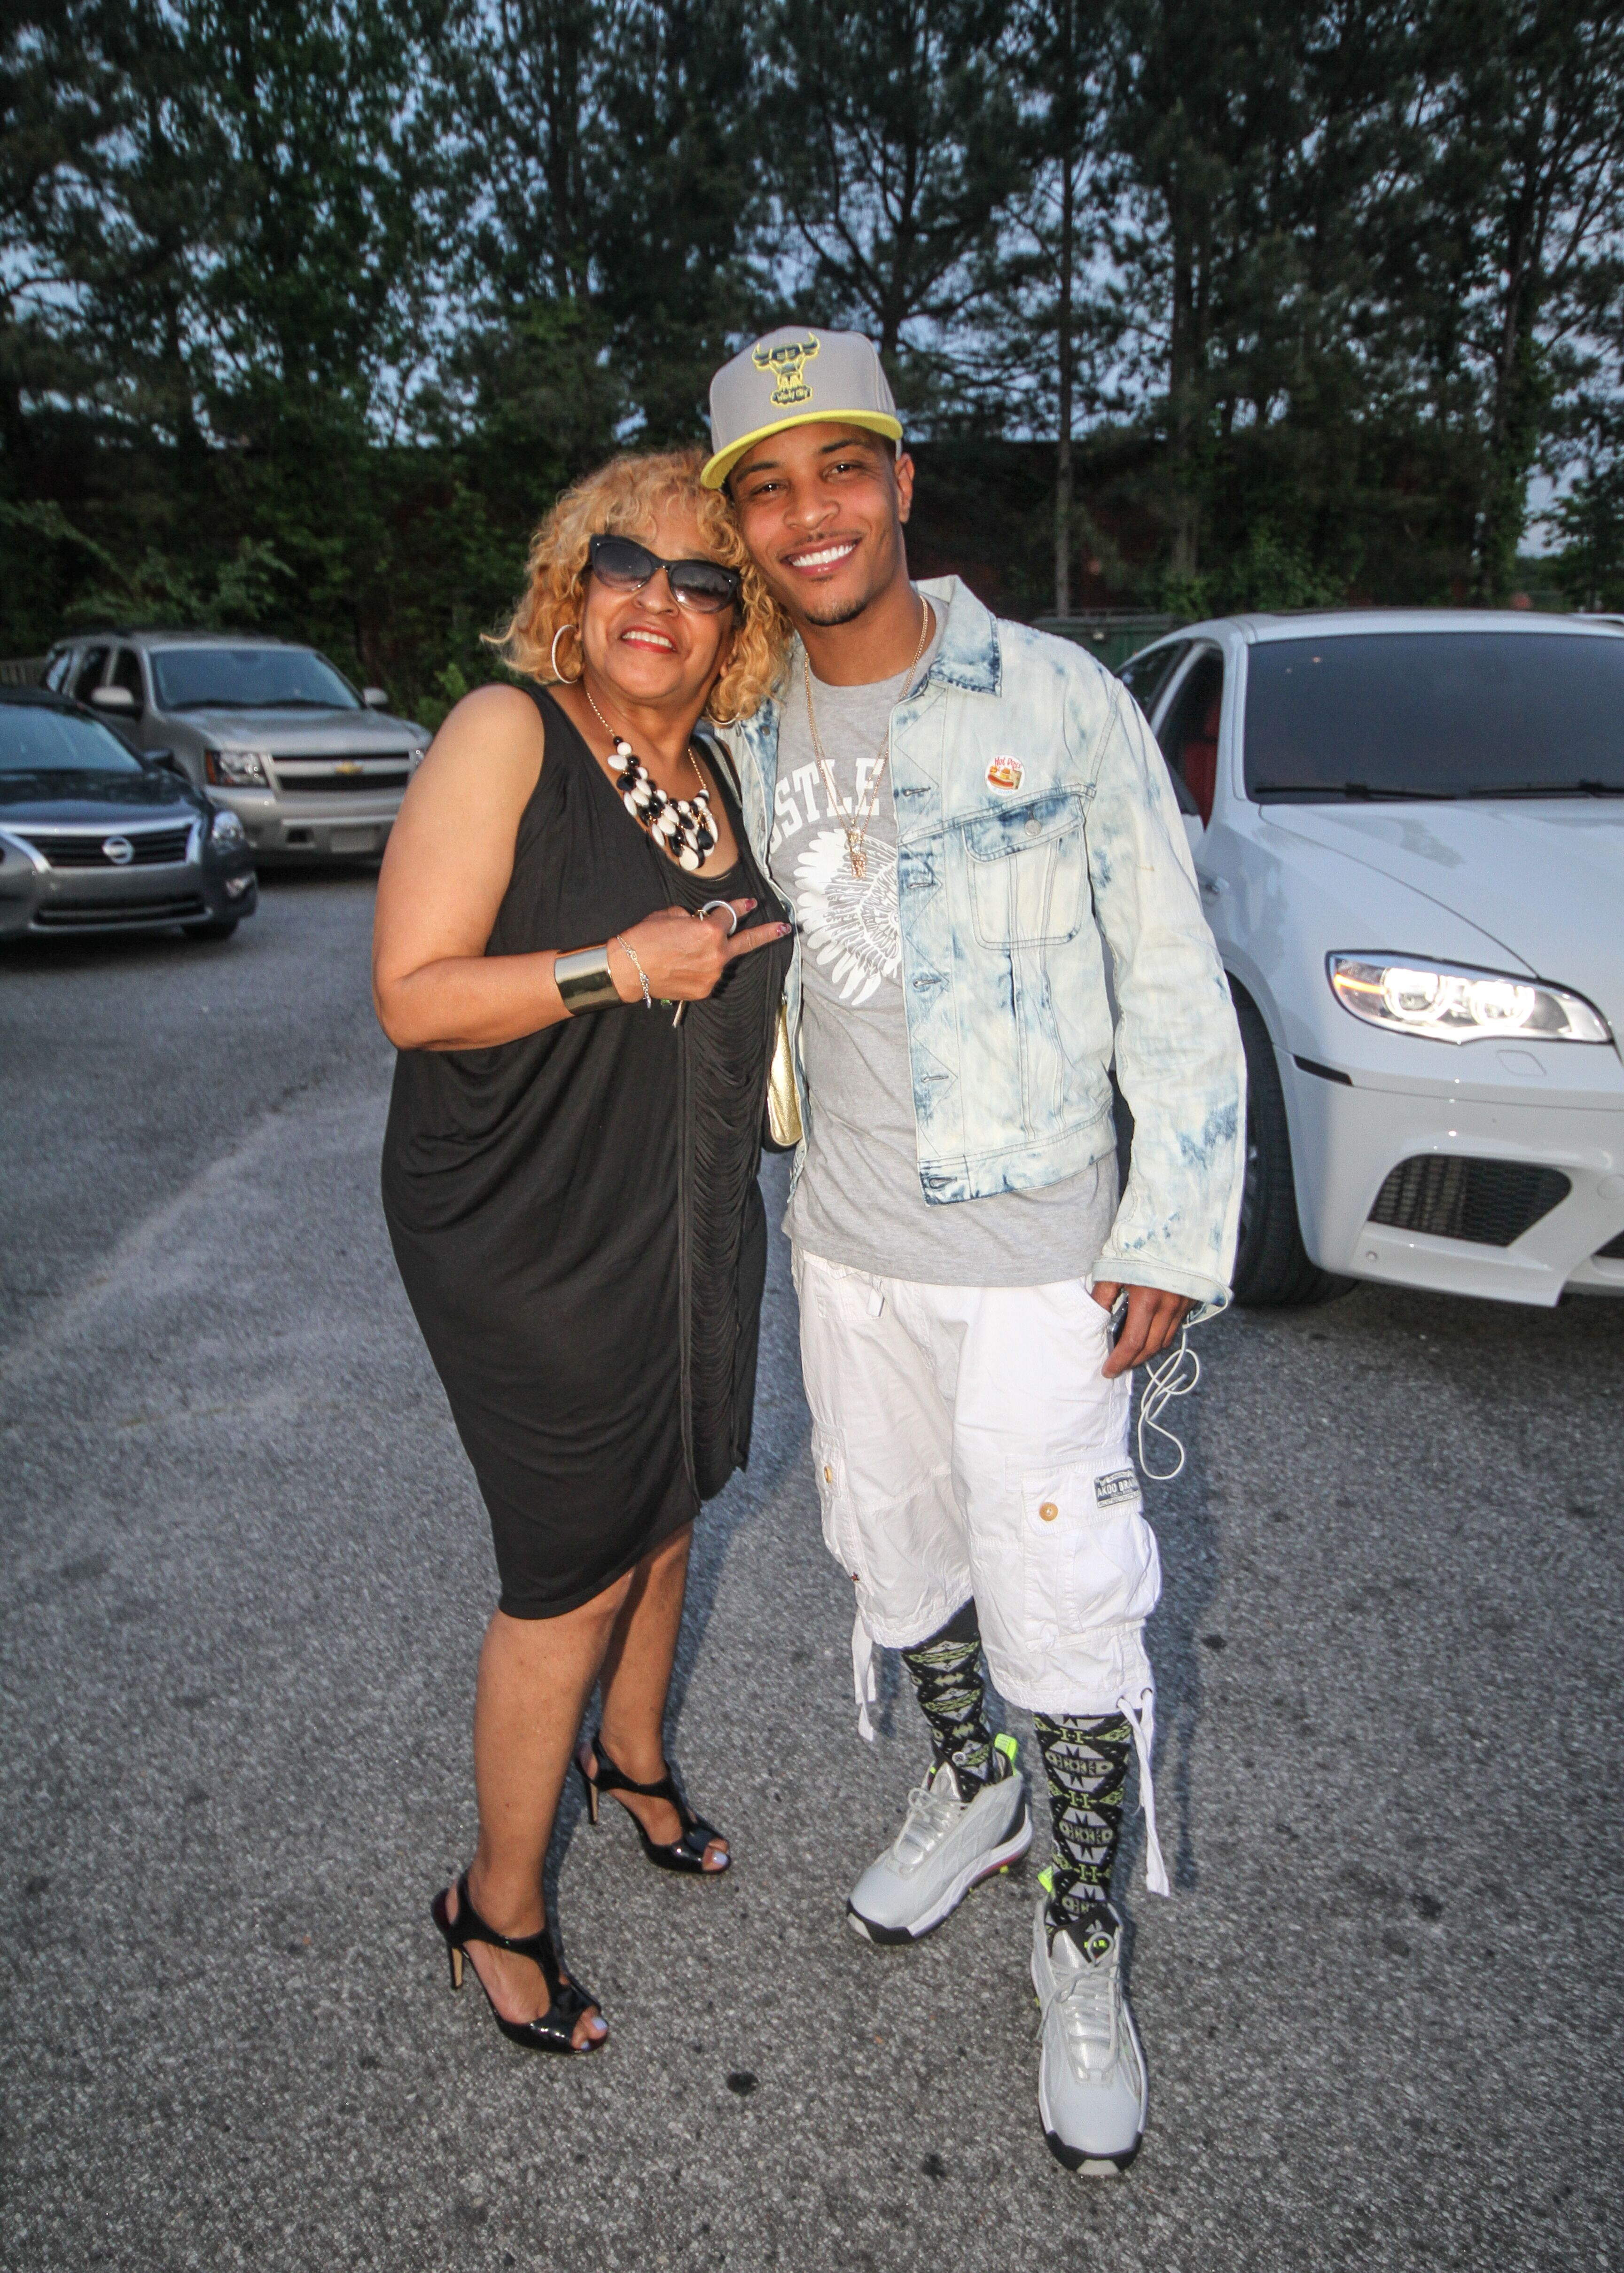 A portrait of T.I. and Precious Harris at parking lot | Source: Getty Images/GlobalImagesUkraine